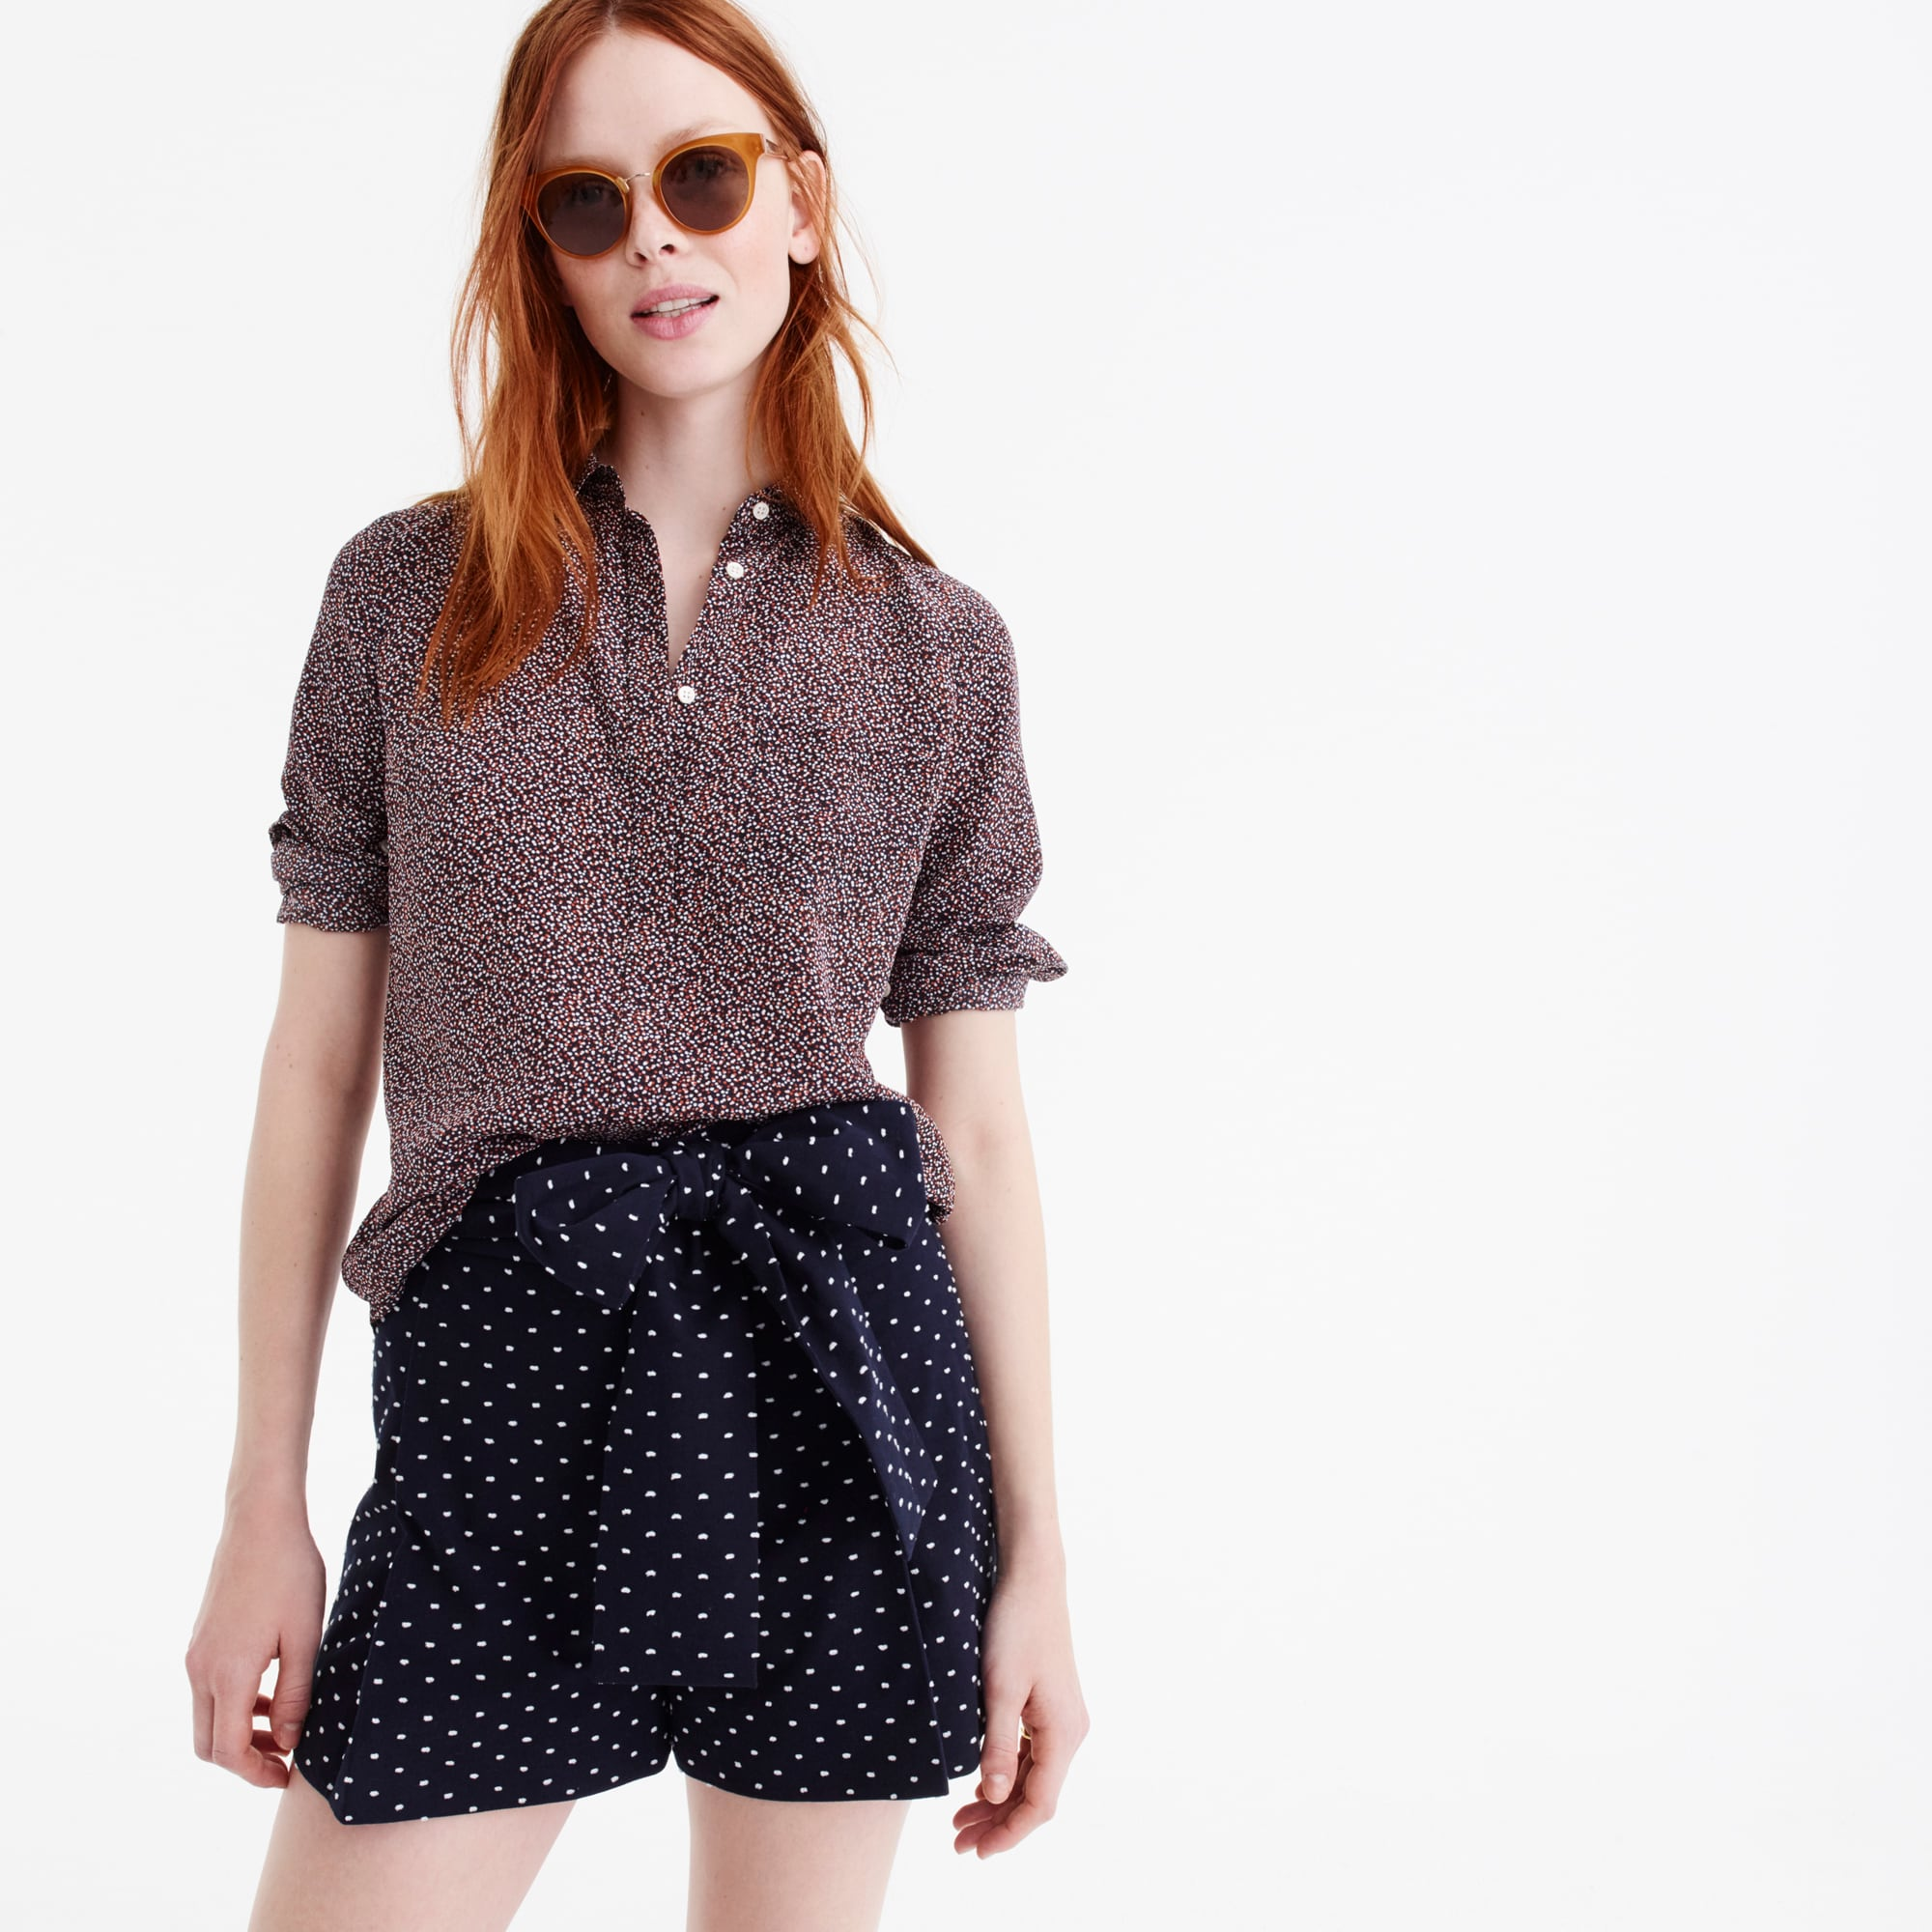 Silk button-up shirt in party dot women shirts & tops c